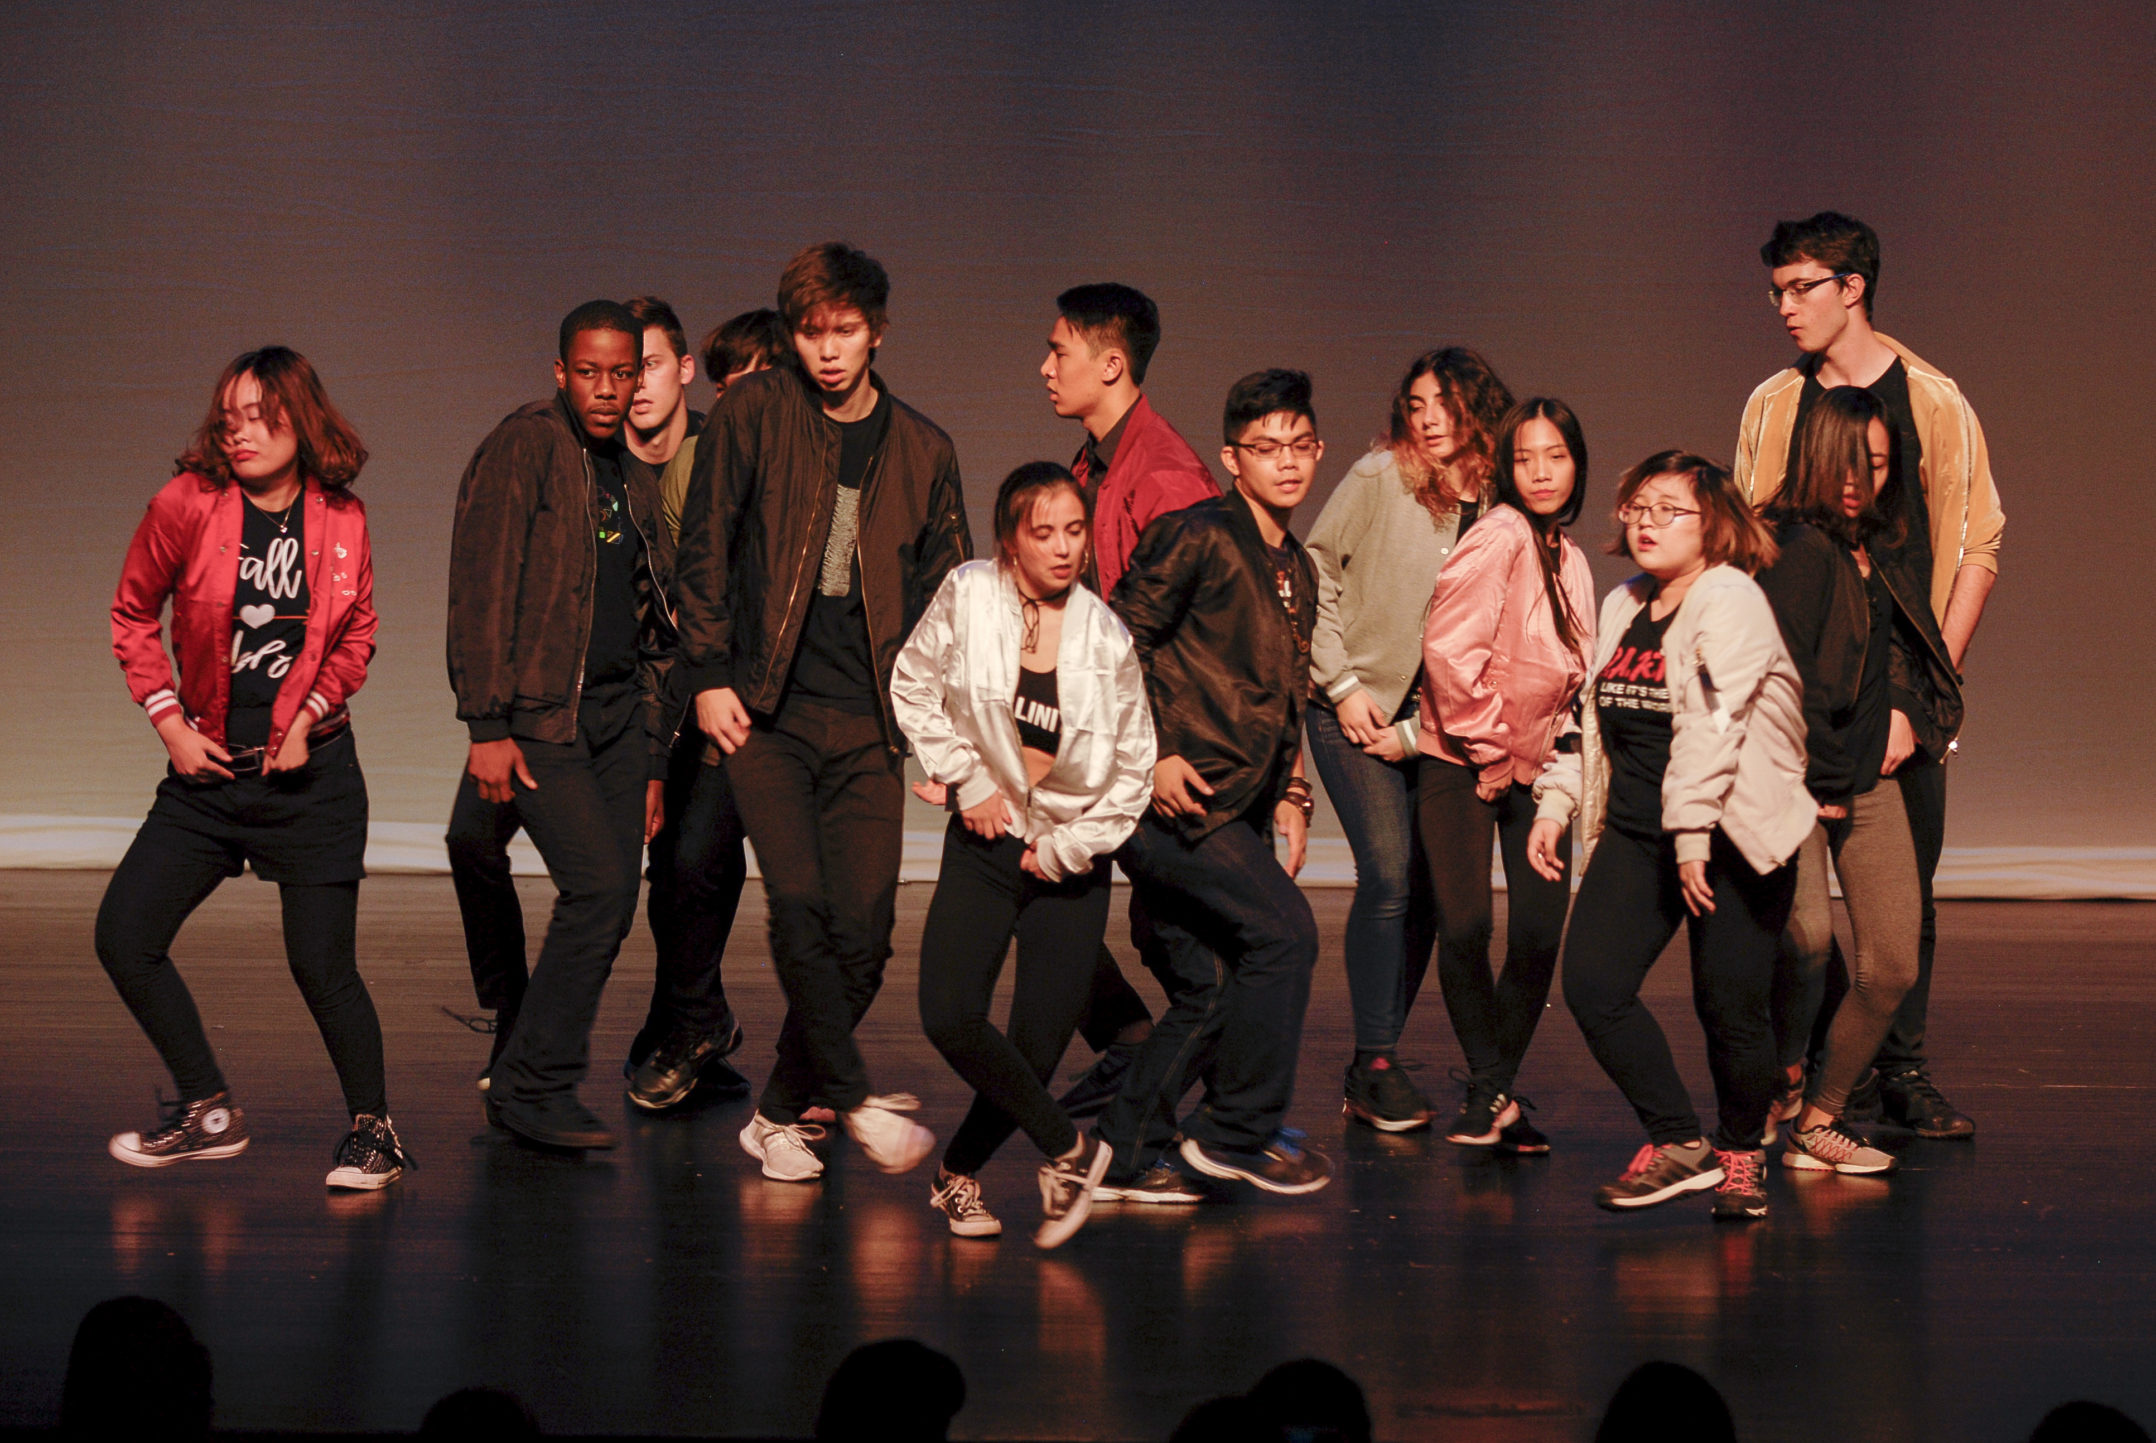 JM Entertainment performs at FUSION on Thursday, Nov. 9, 2017, in Zoellner Arts Center. JM Entertainment is a student-run K-pop cover dance group at Lehigh University. (Roshan Giyanani/B&W Staff)